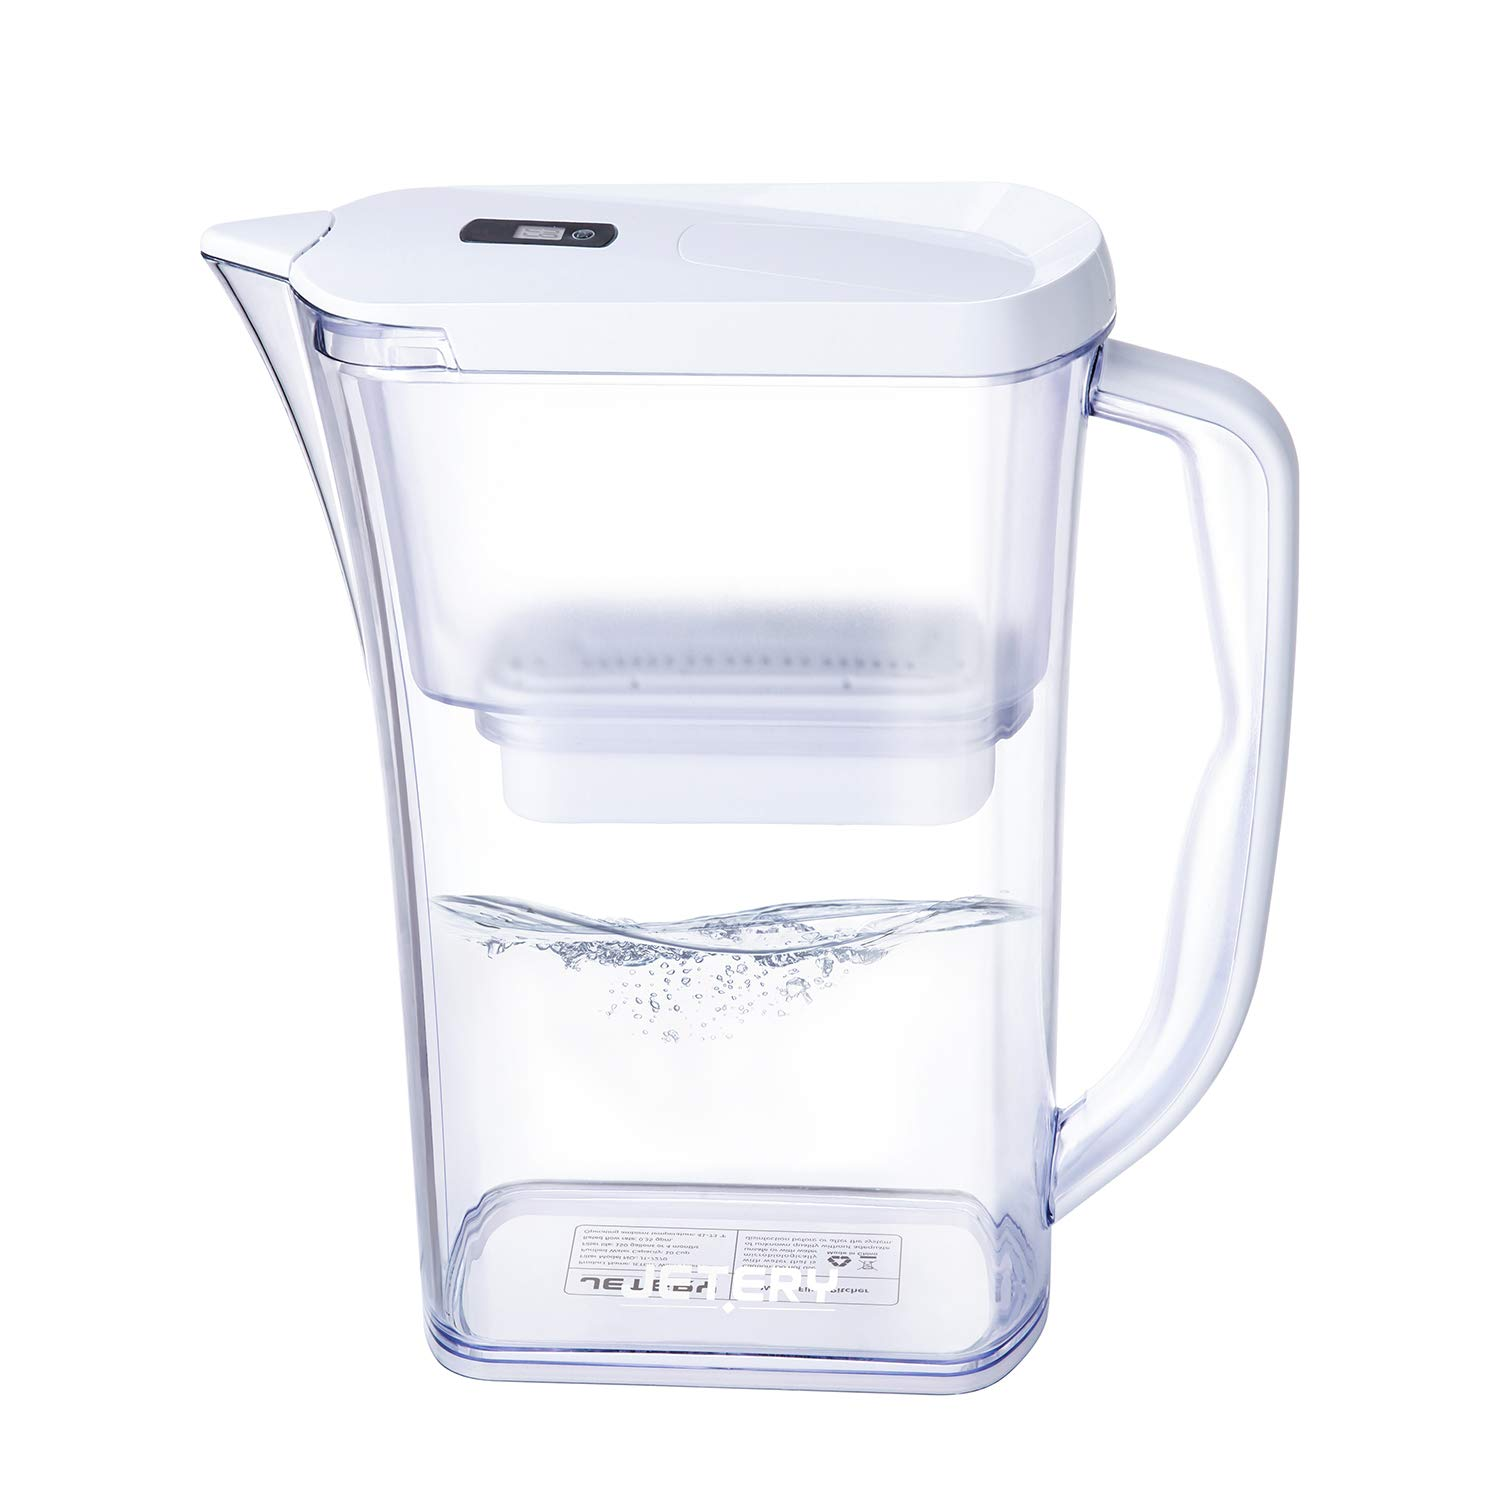 JETERY Water Filter Jug 2.8L Capacity, Long Lasting Fast Filtration with Patented ACF Military Technology, Cool Water Purifier Pitcher